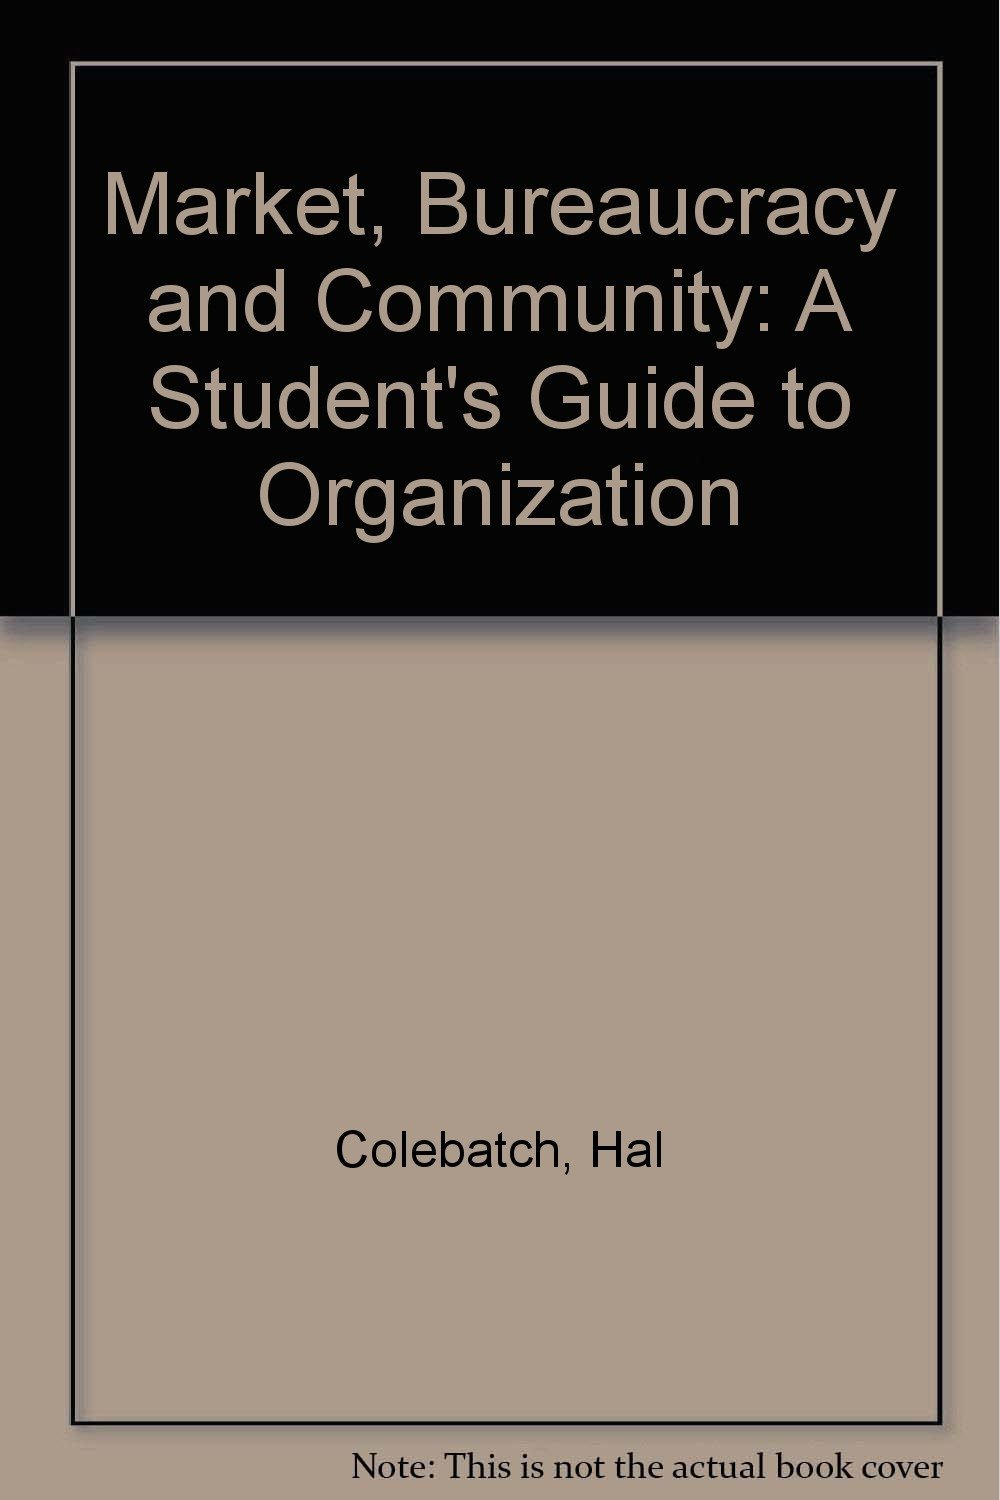 Market, Bureaucracy and Community: A Student's Guide to Organization